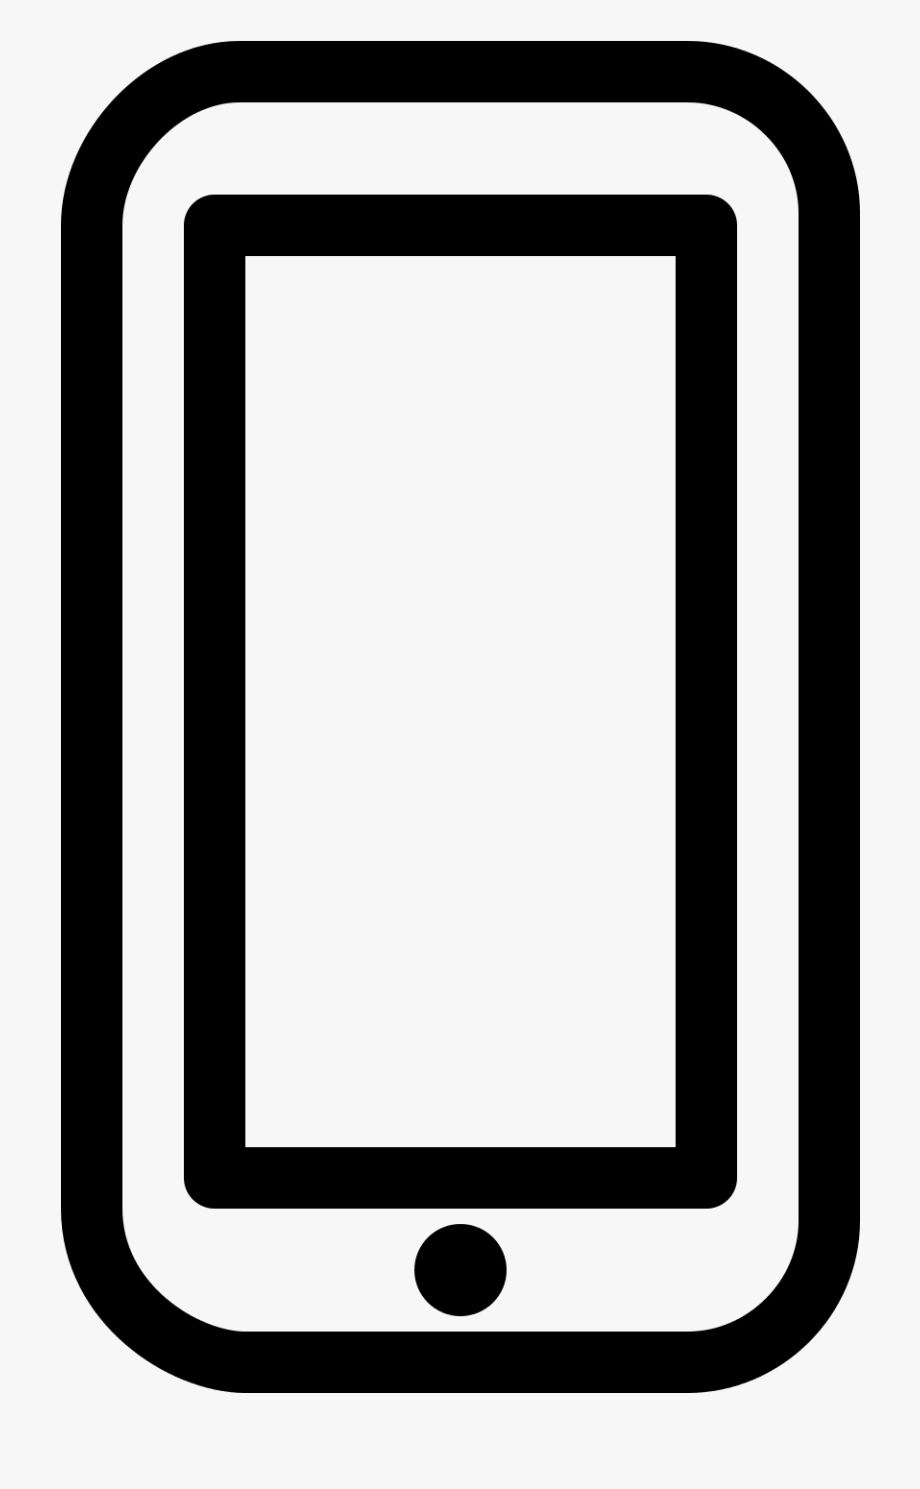 Iphone Clipart Svg.